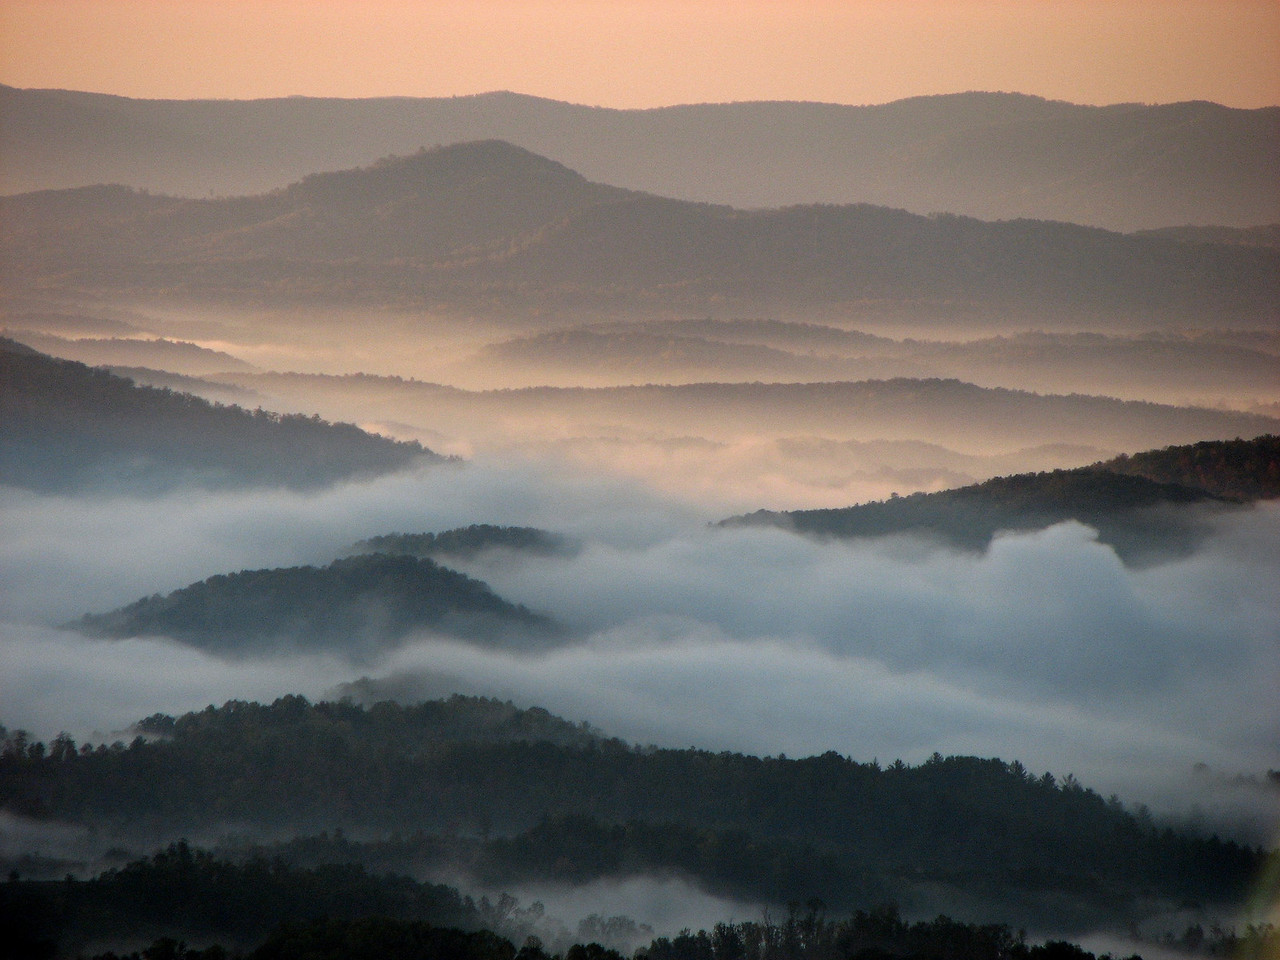 Low clouds and sunrise from Gillespie Gap, milepost 331 on the Blue Ridge Parkway